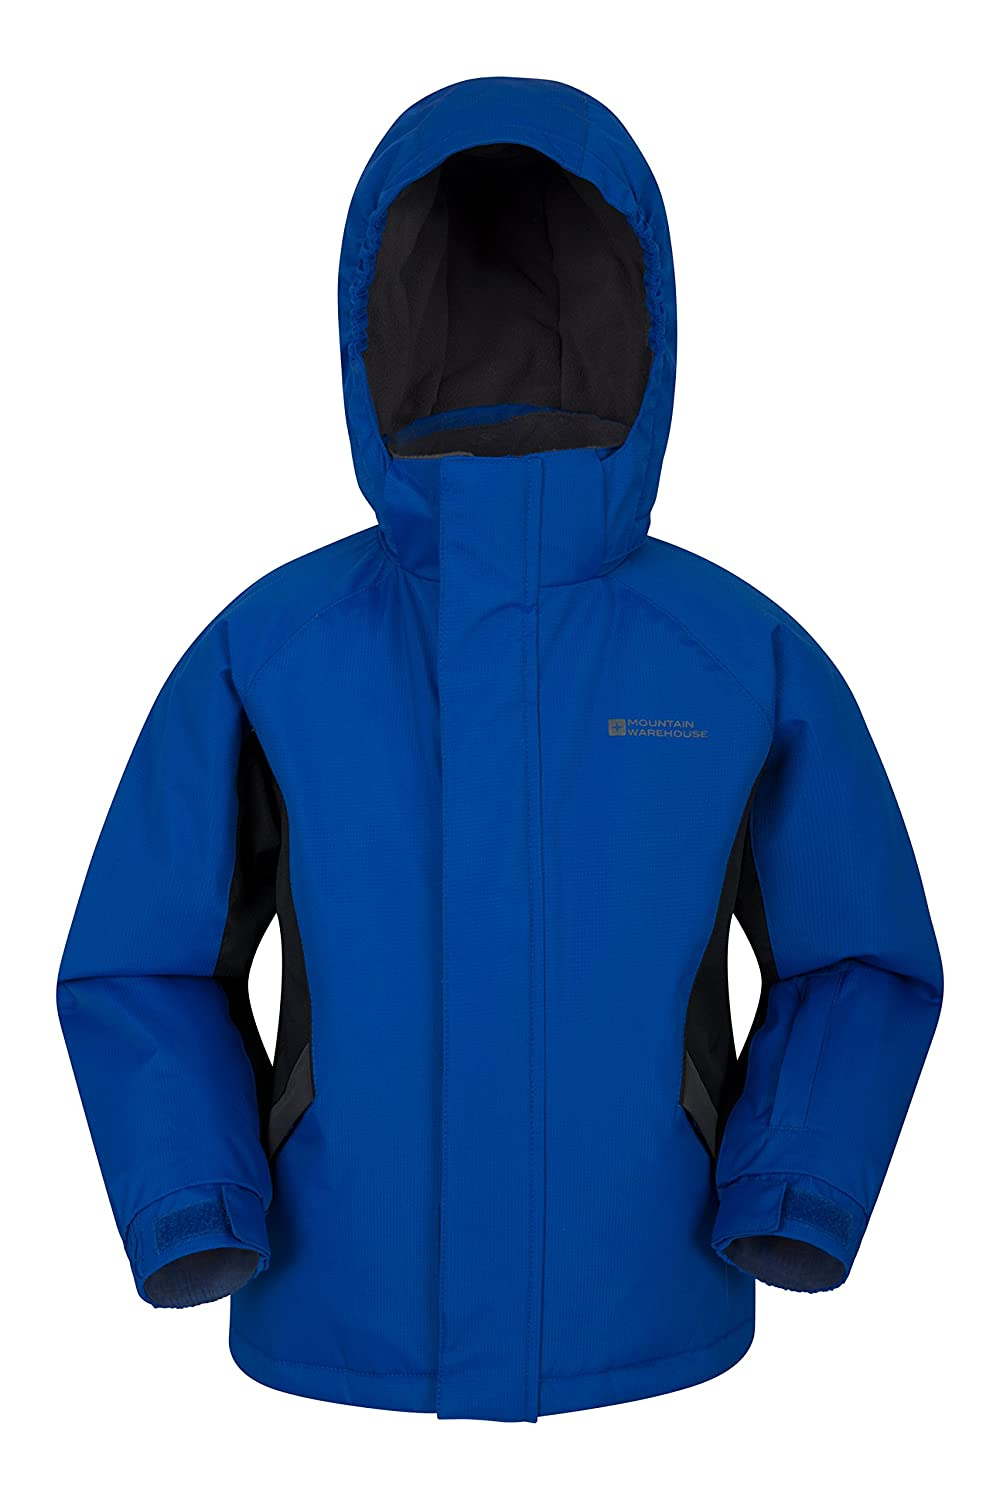 Mountain Warehouse Raptor Kids Snow Jacket - Snowproof Girls Winter Coat, Fleece Lined Boys Ski Coat, Integrated Snowskirt - Perfect For Camping in Cold Weather